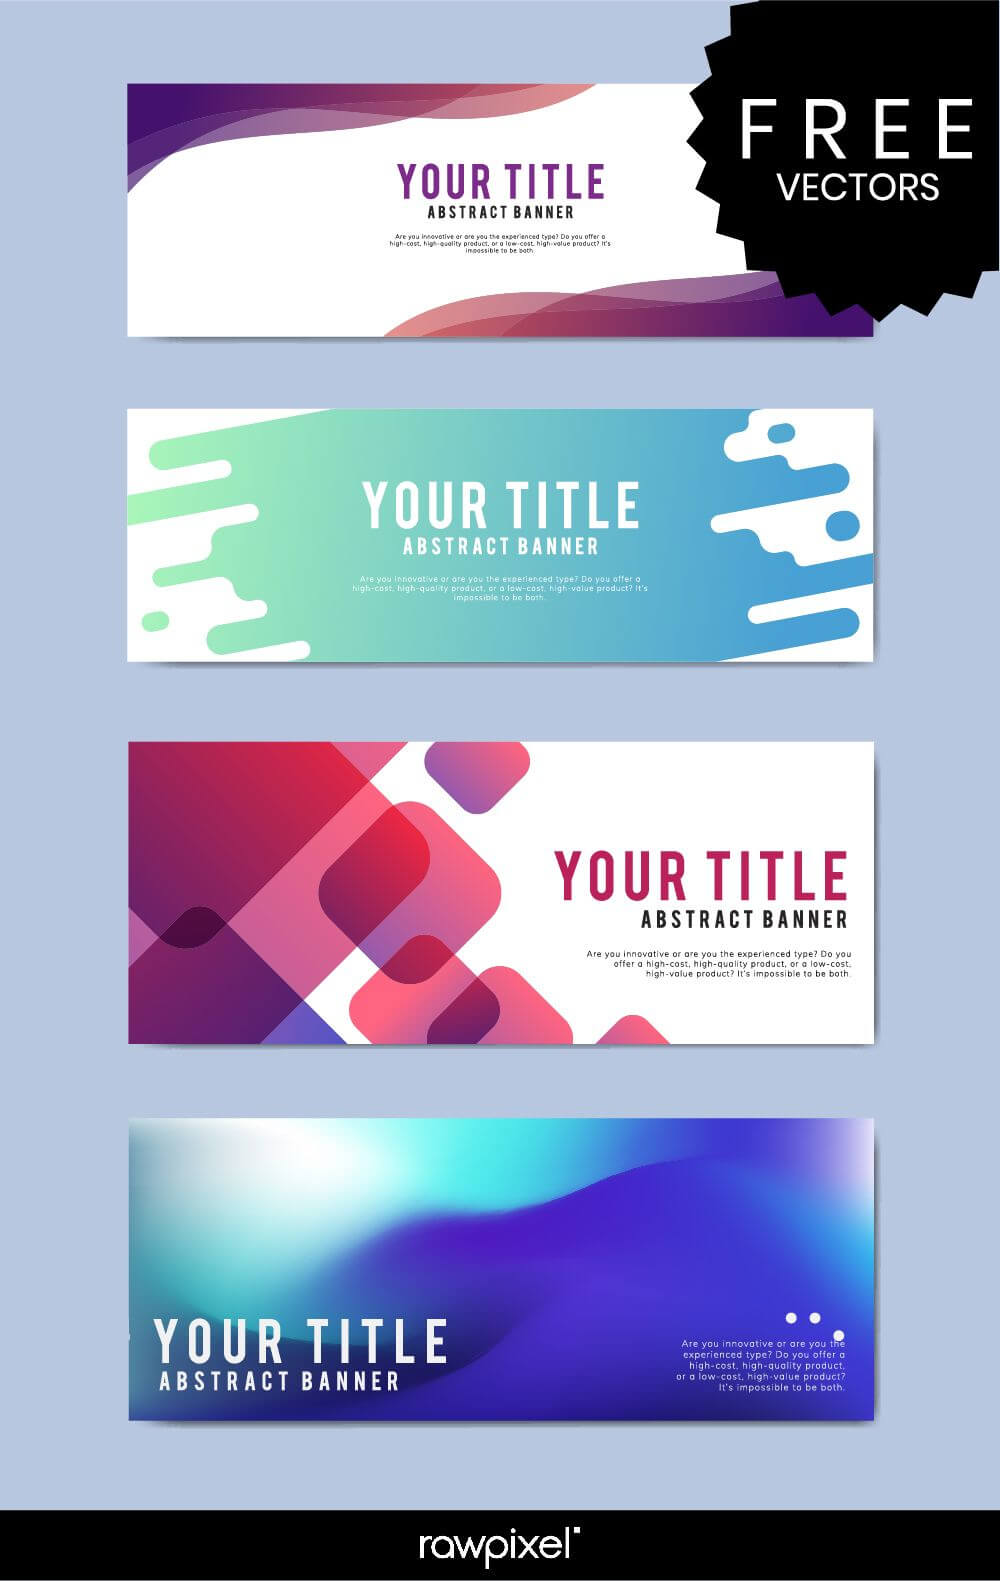 Download Free Modern Business Banner Templates At Rawpixel for Free Etsy Banner Template